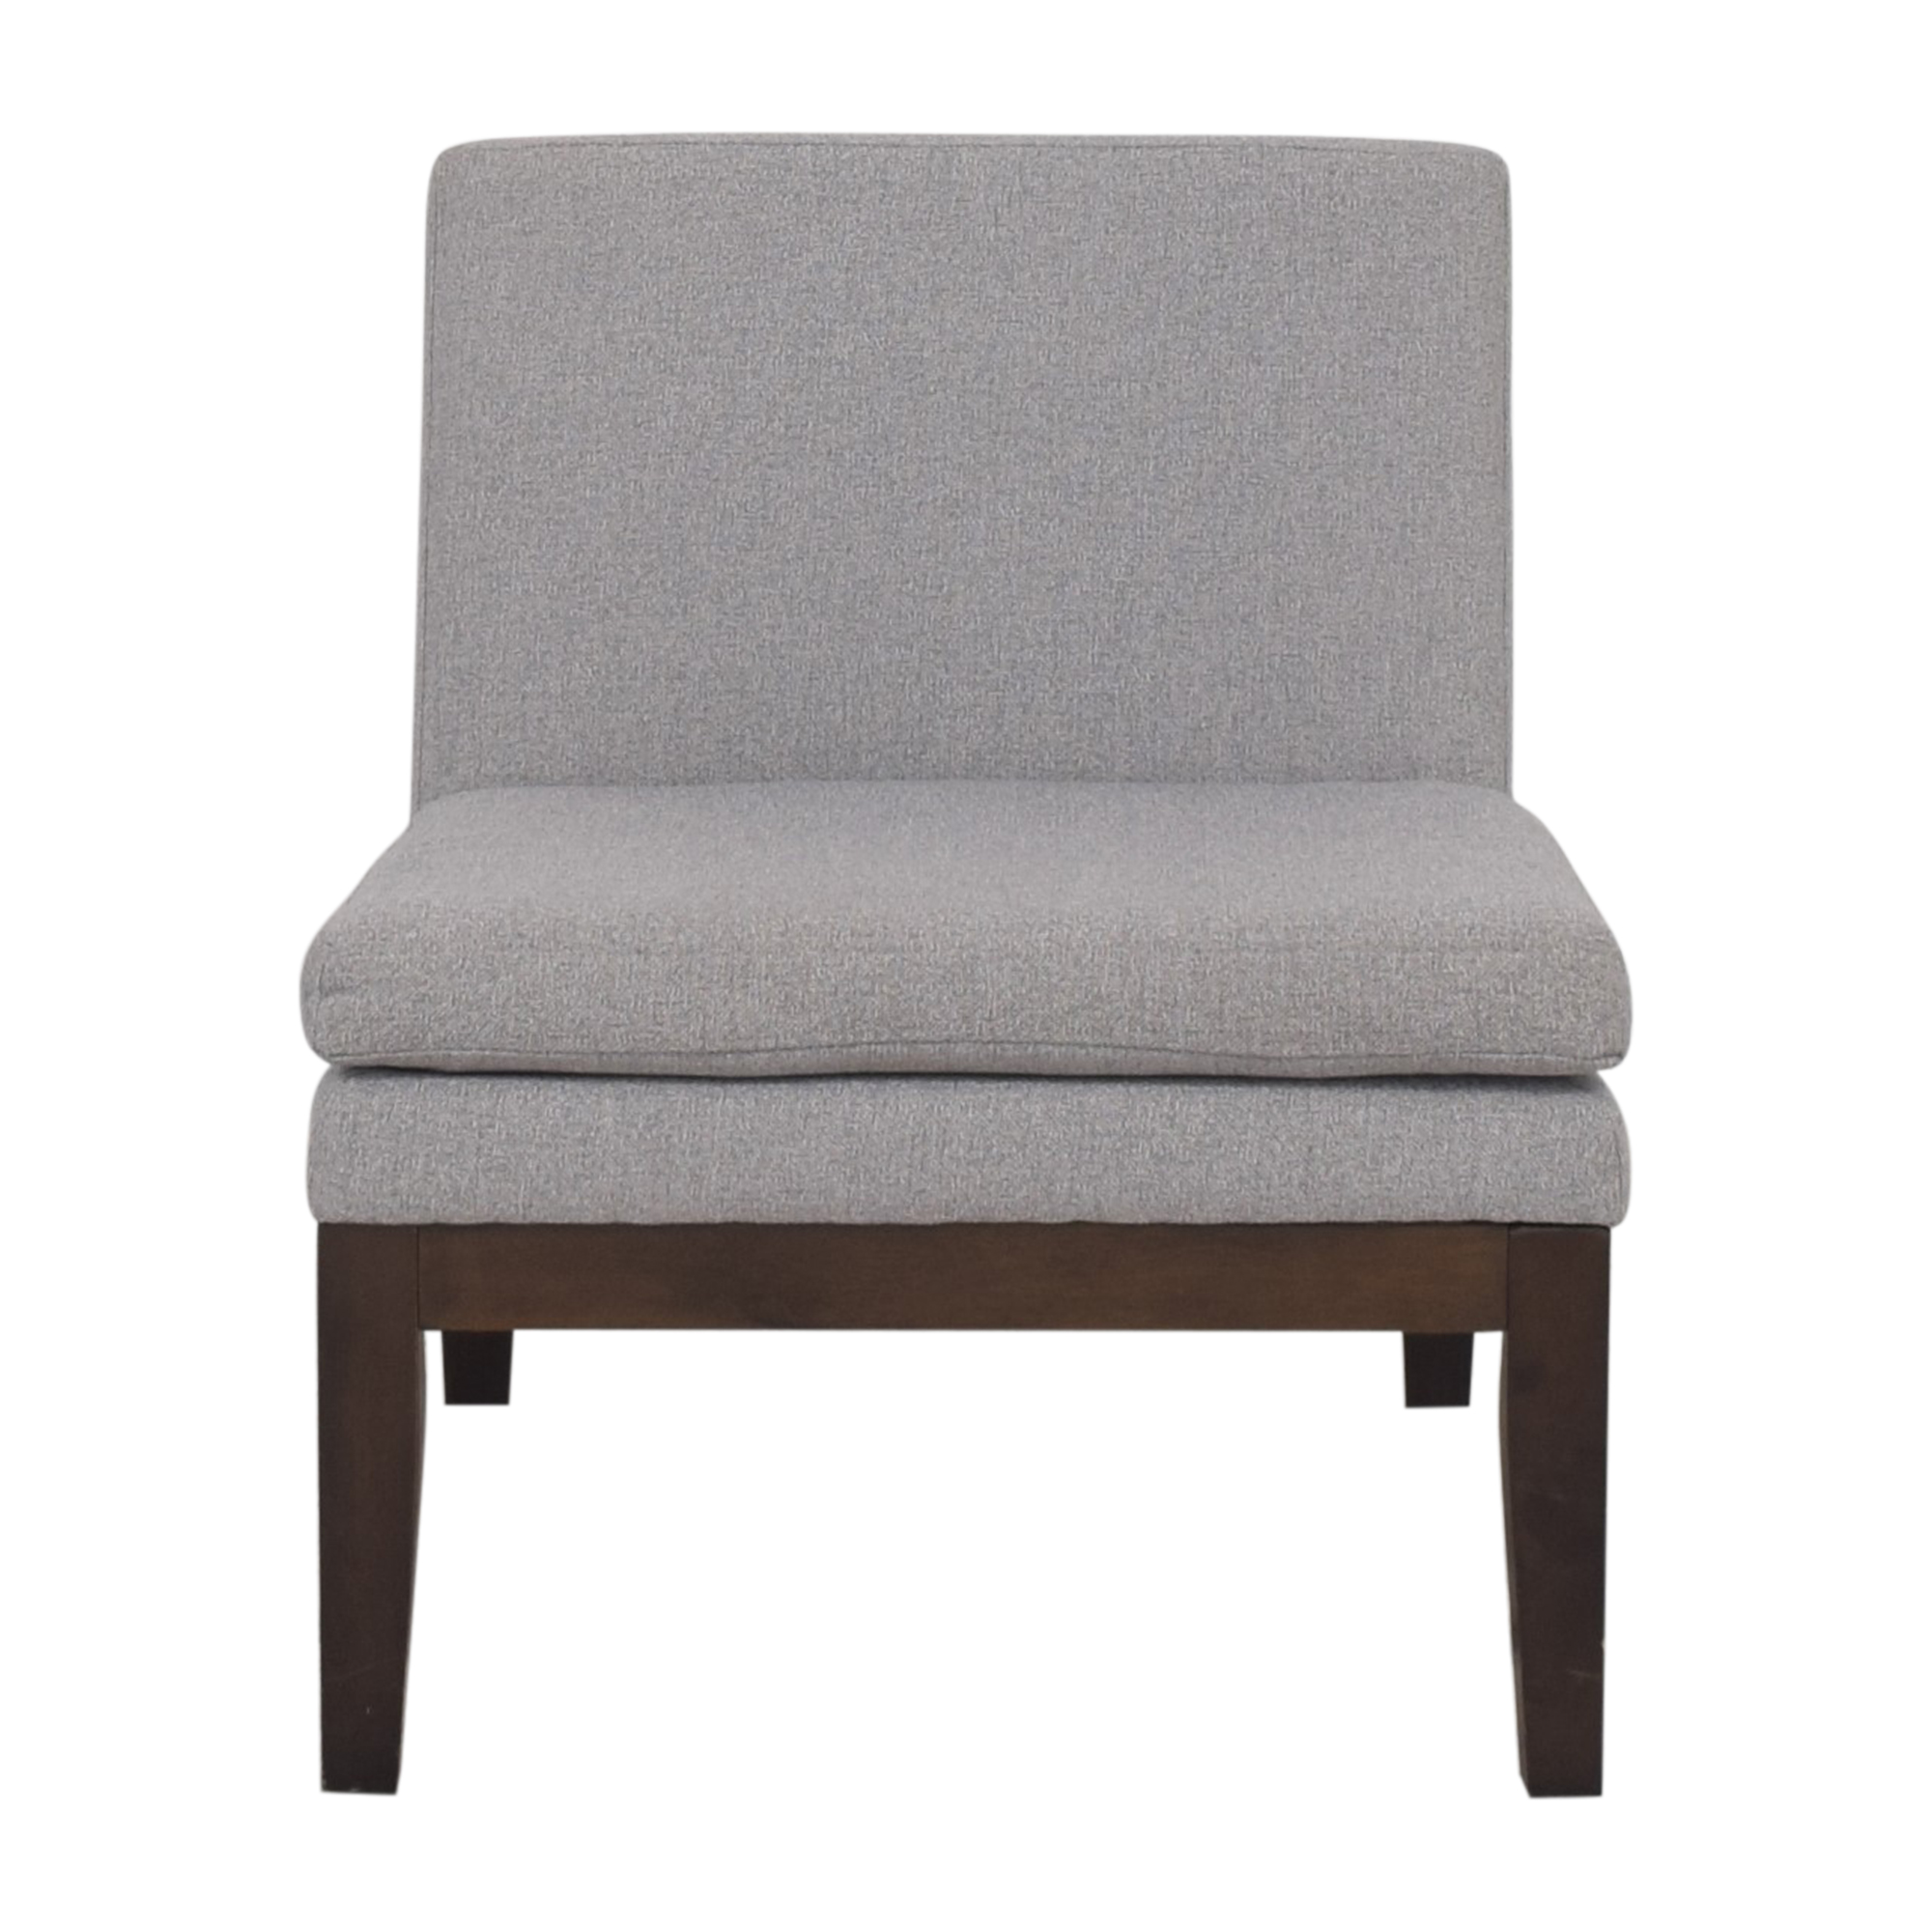 West Elm West Elm Slipper Chair second hand